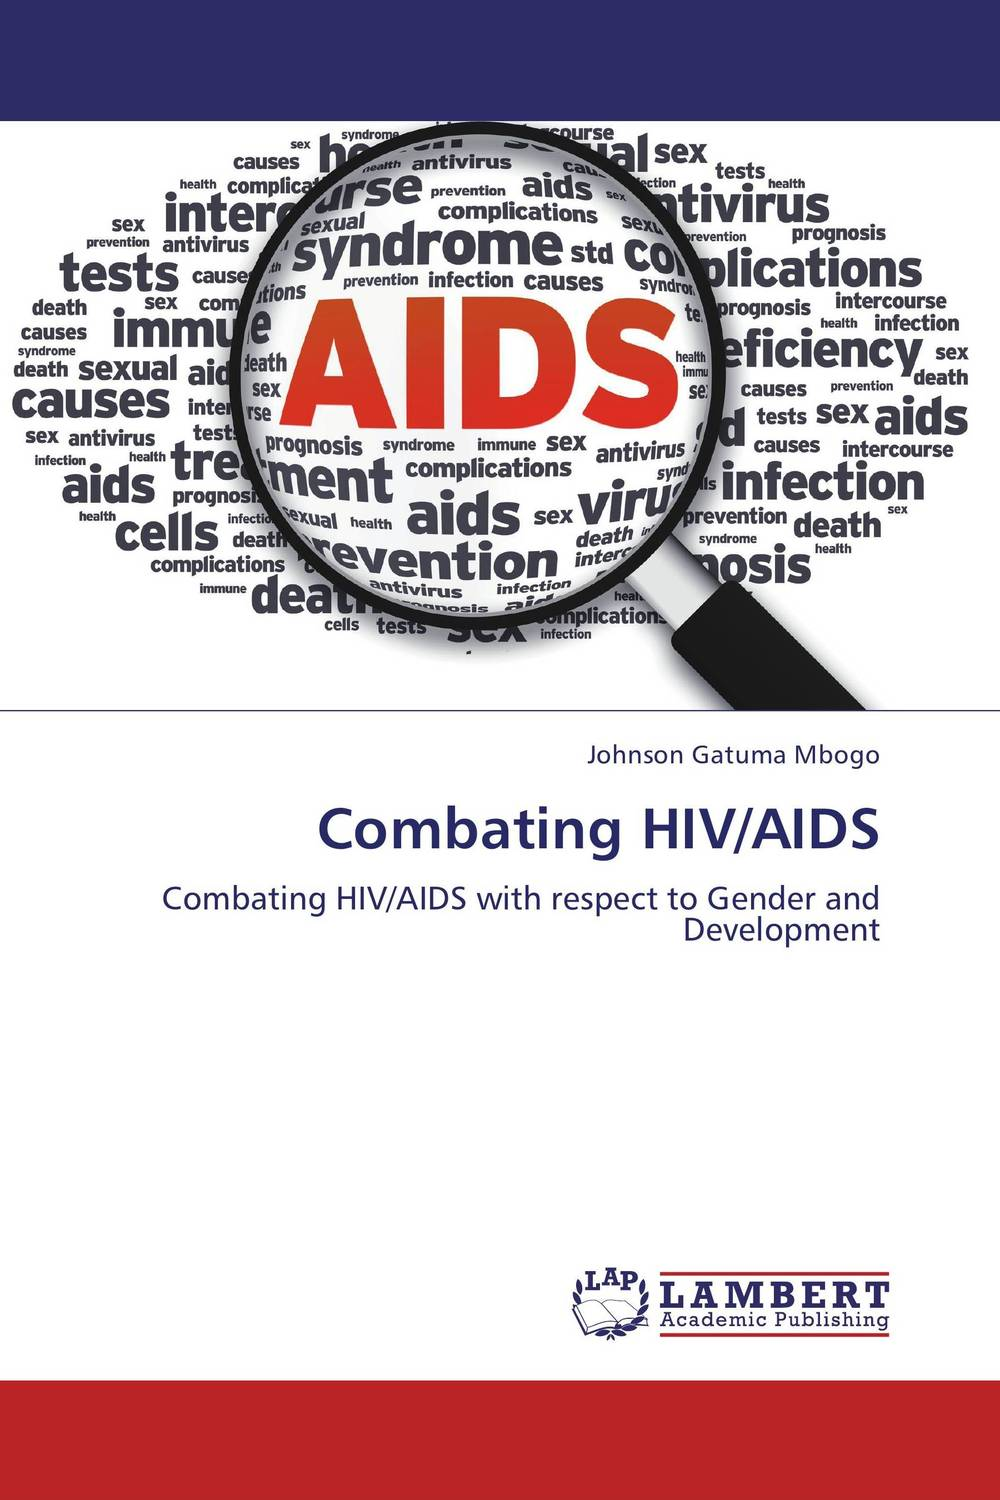 Combating HIV/AIDS chidozie mbada and yewande ogunmoyole exercise capacity and health related quality of life in hiv aids